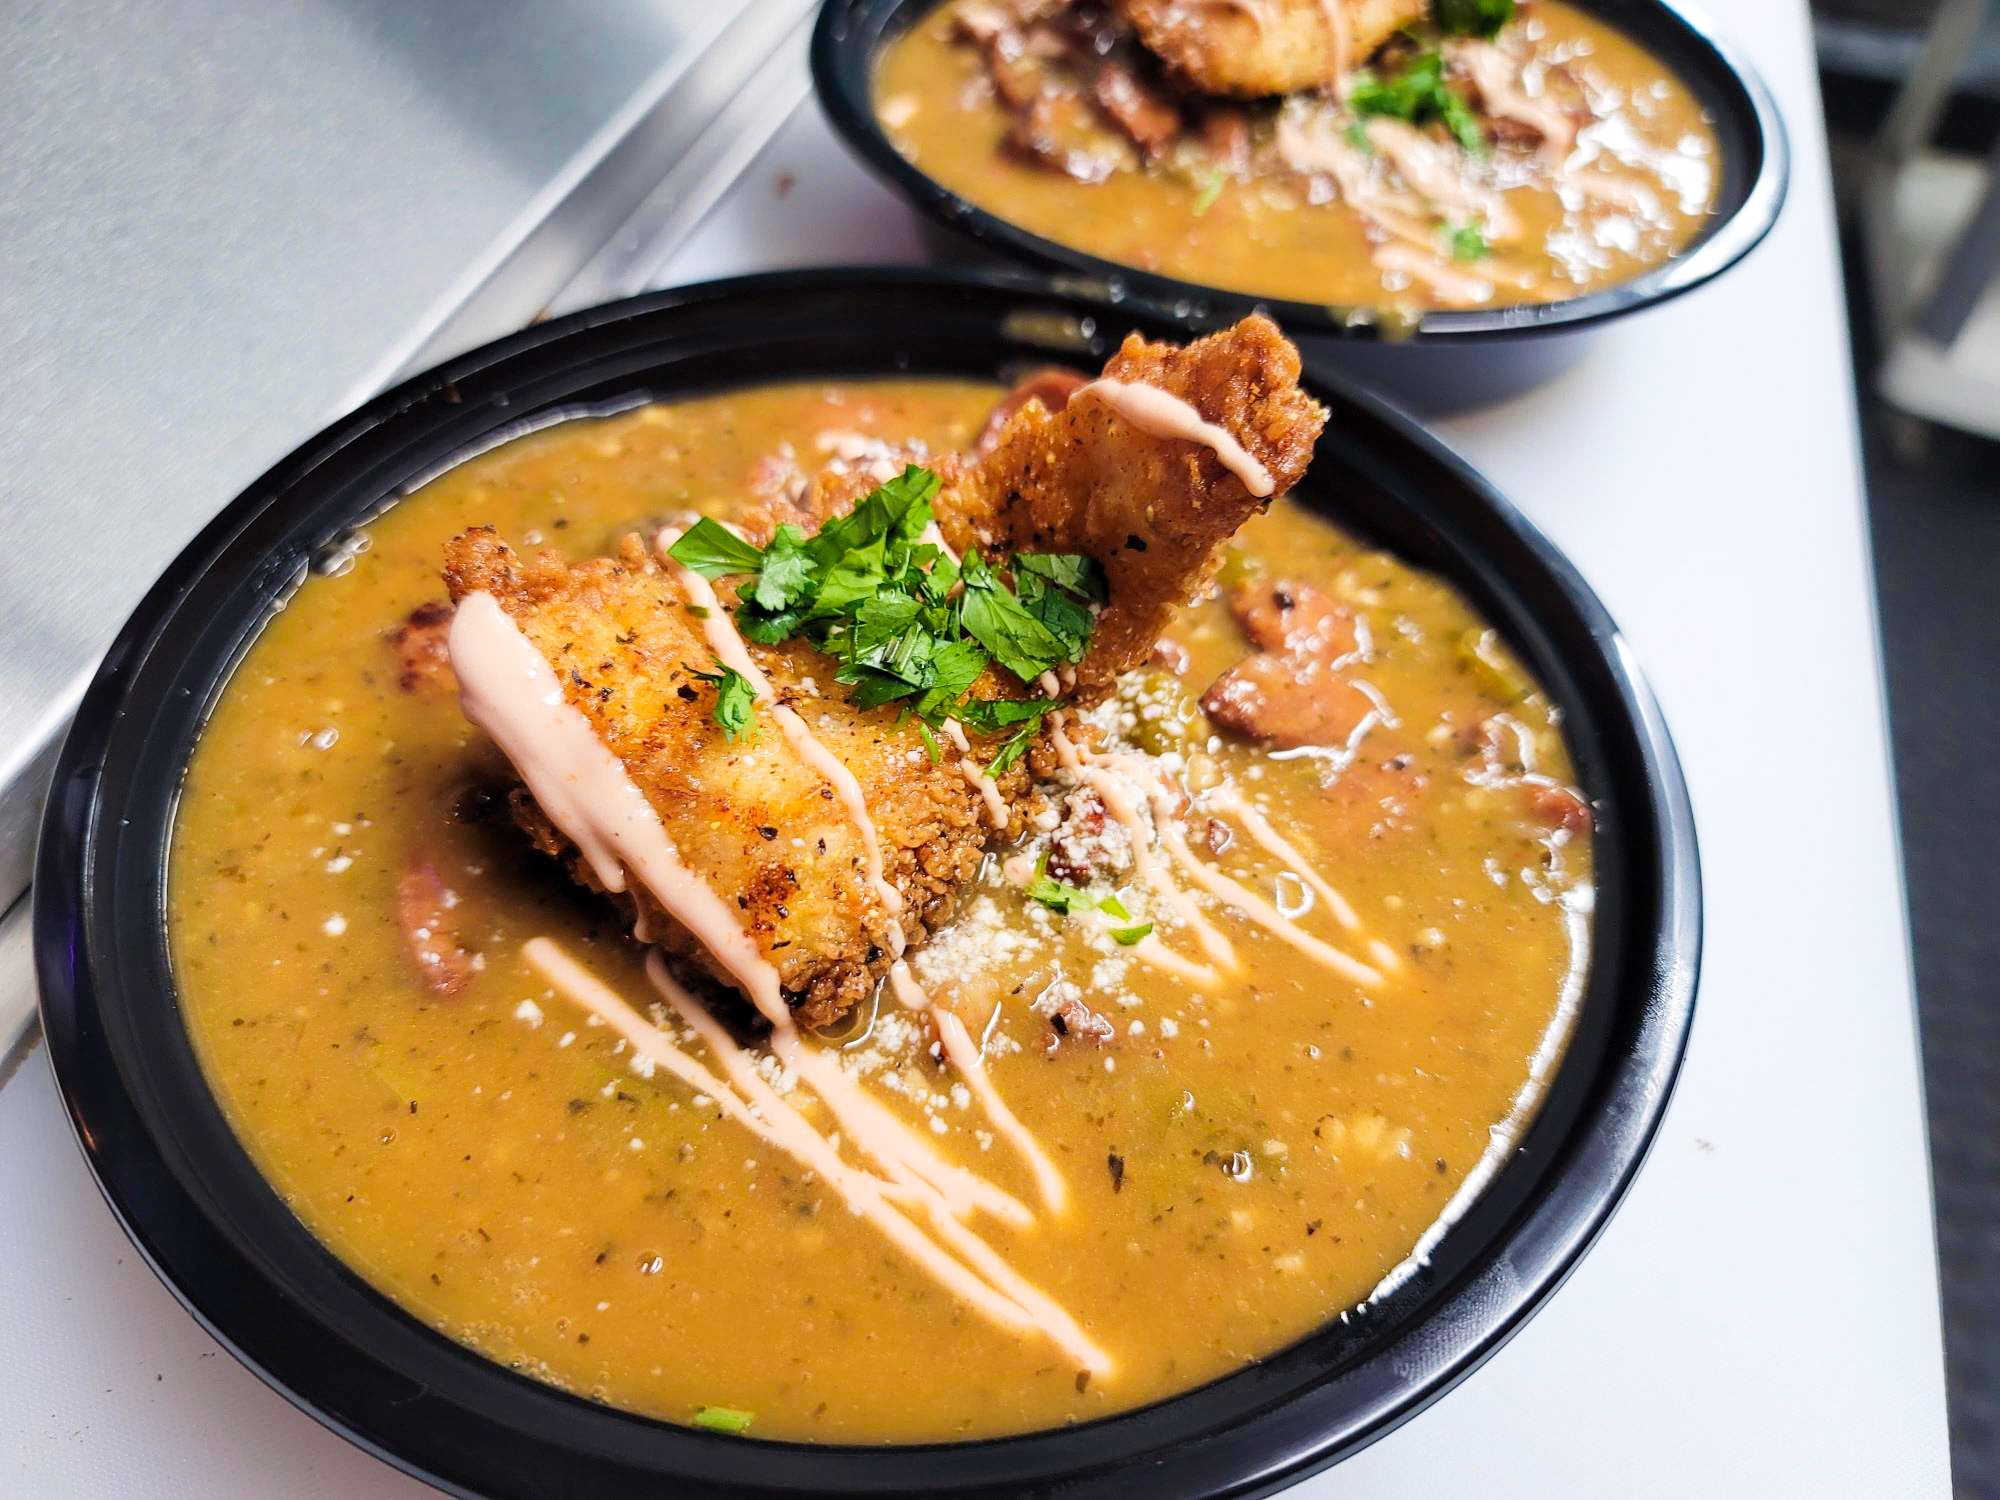 A black bowl on a cold table in a kitchen is filled with etouffee, with a piece of fried catfish on top